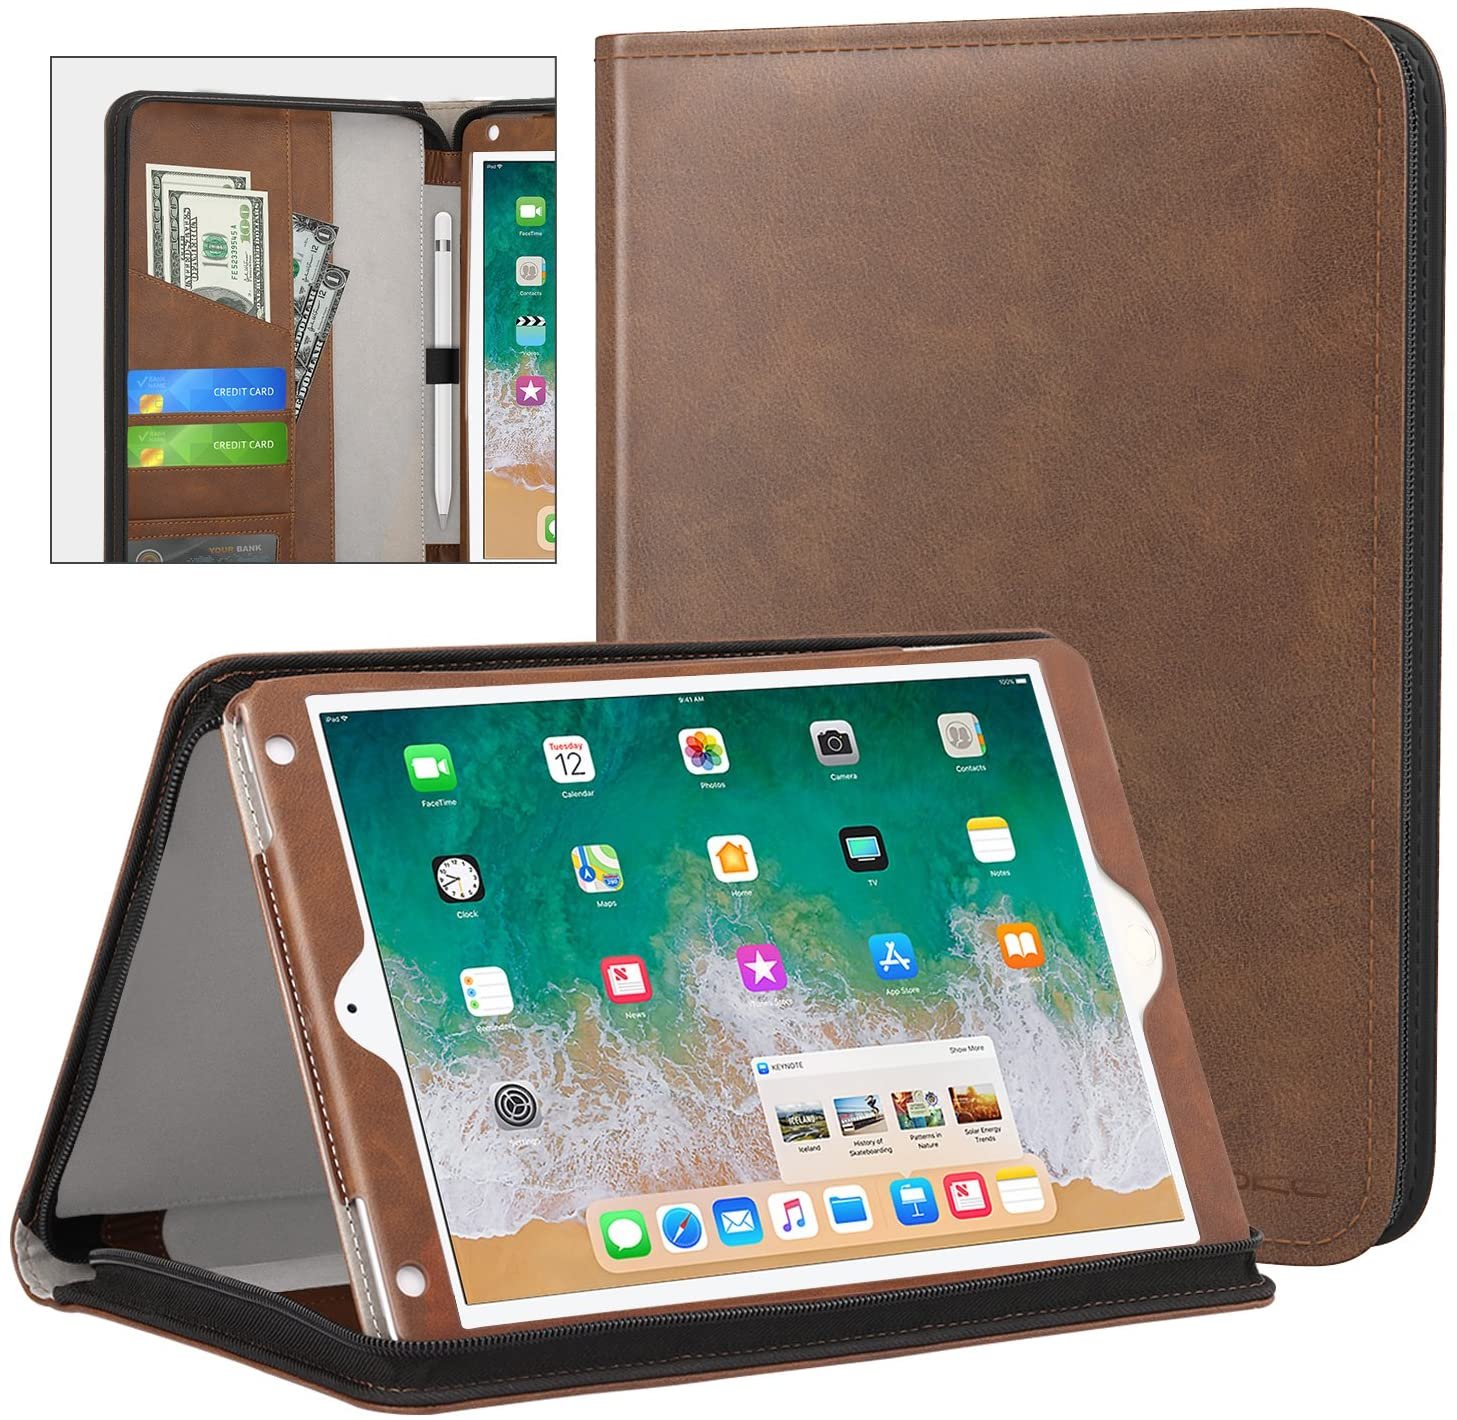 MoKo Case Fit 2018/2017 iPad 9.7 6th/5th Generation/iPad Air/iPad Air 2 Tablet, Genuine Executive Portfolio Case Slim Folding Stand Cover with Document Card Slots, Brown